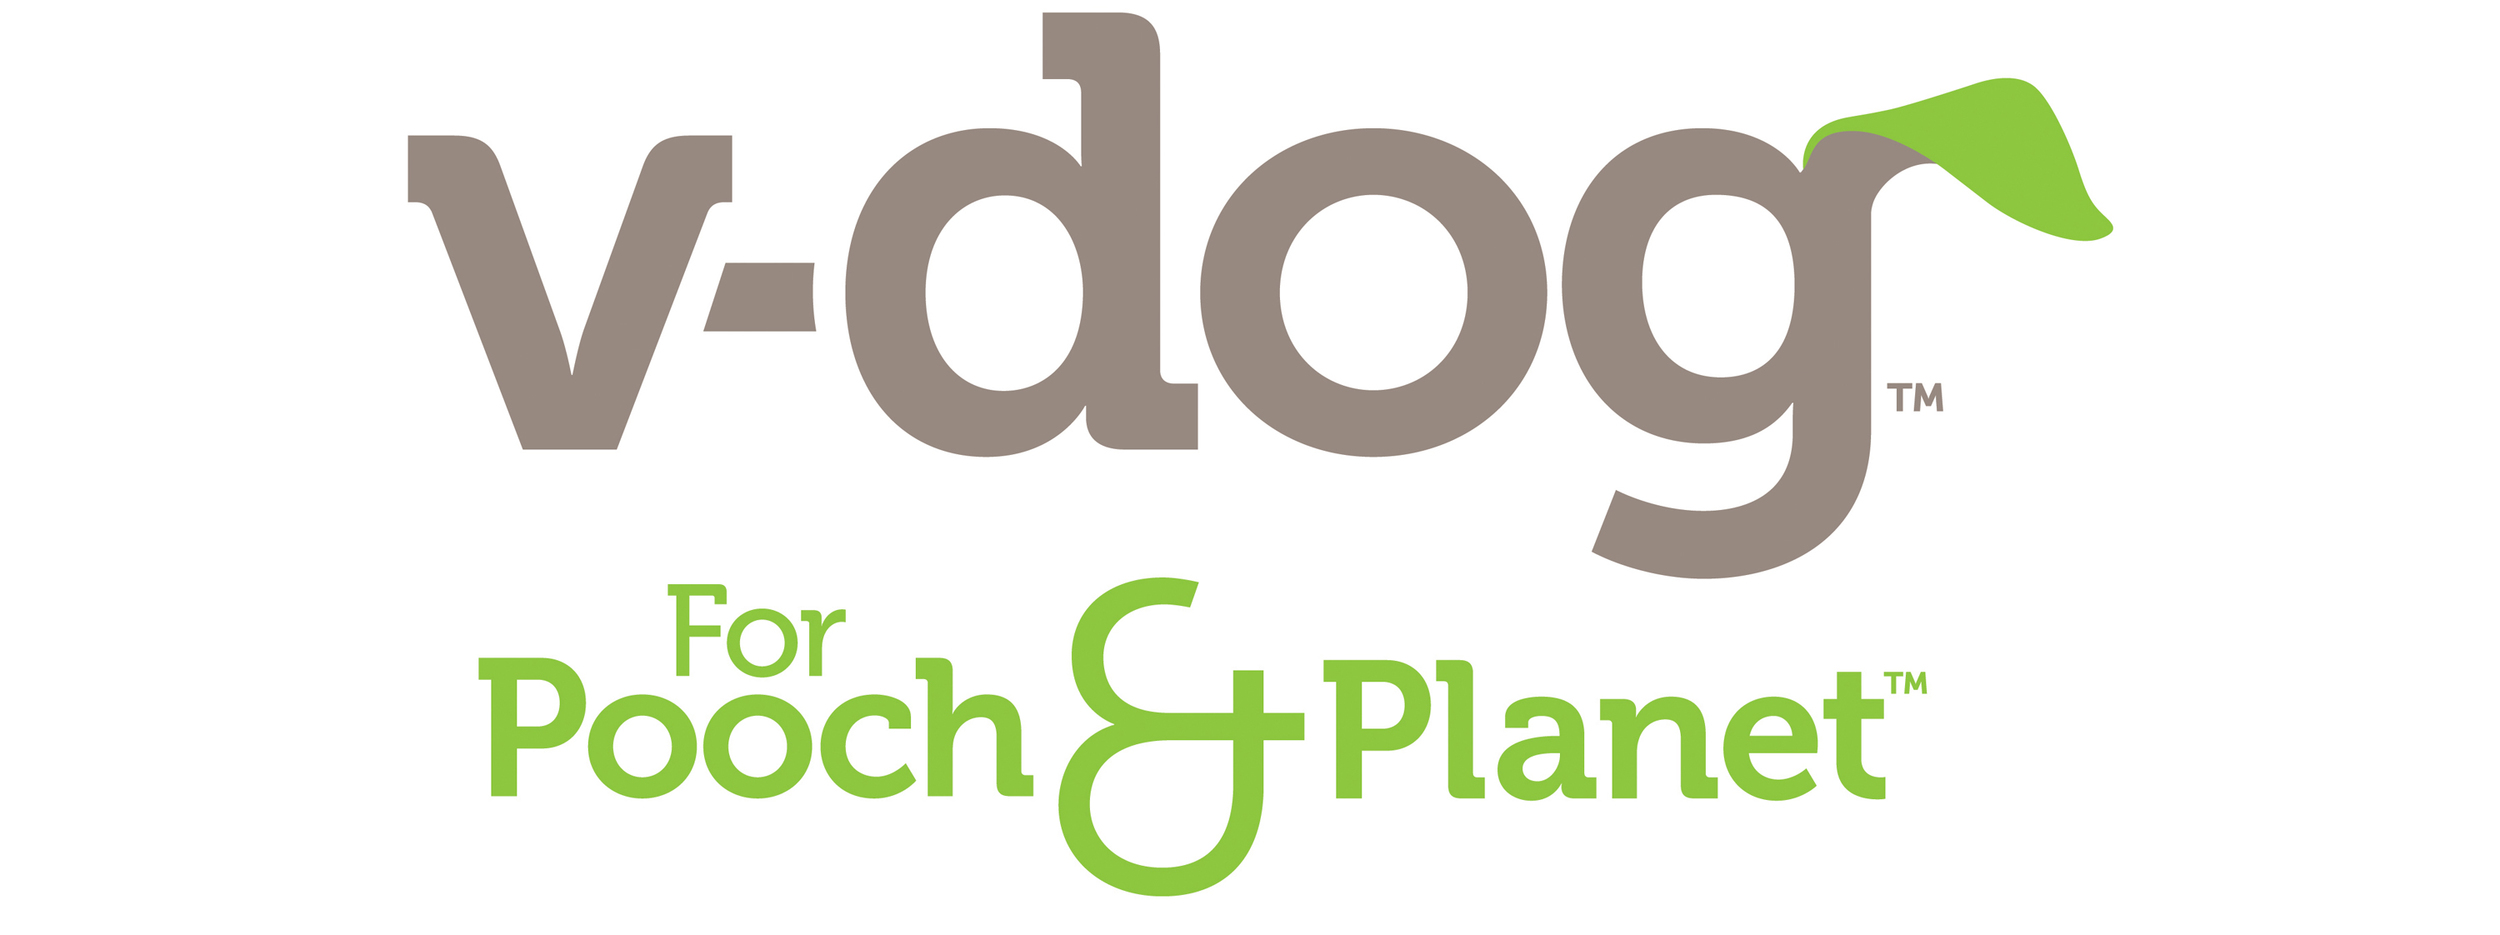 V-Dog logo design and tagline by Good Stuff Partners